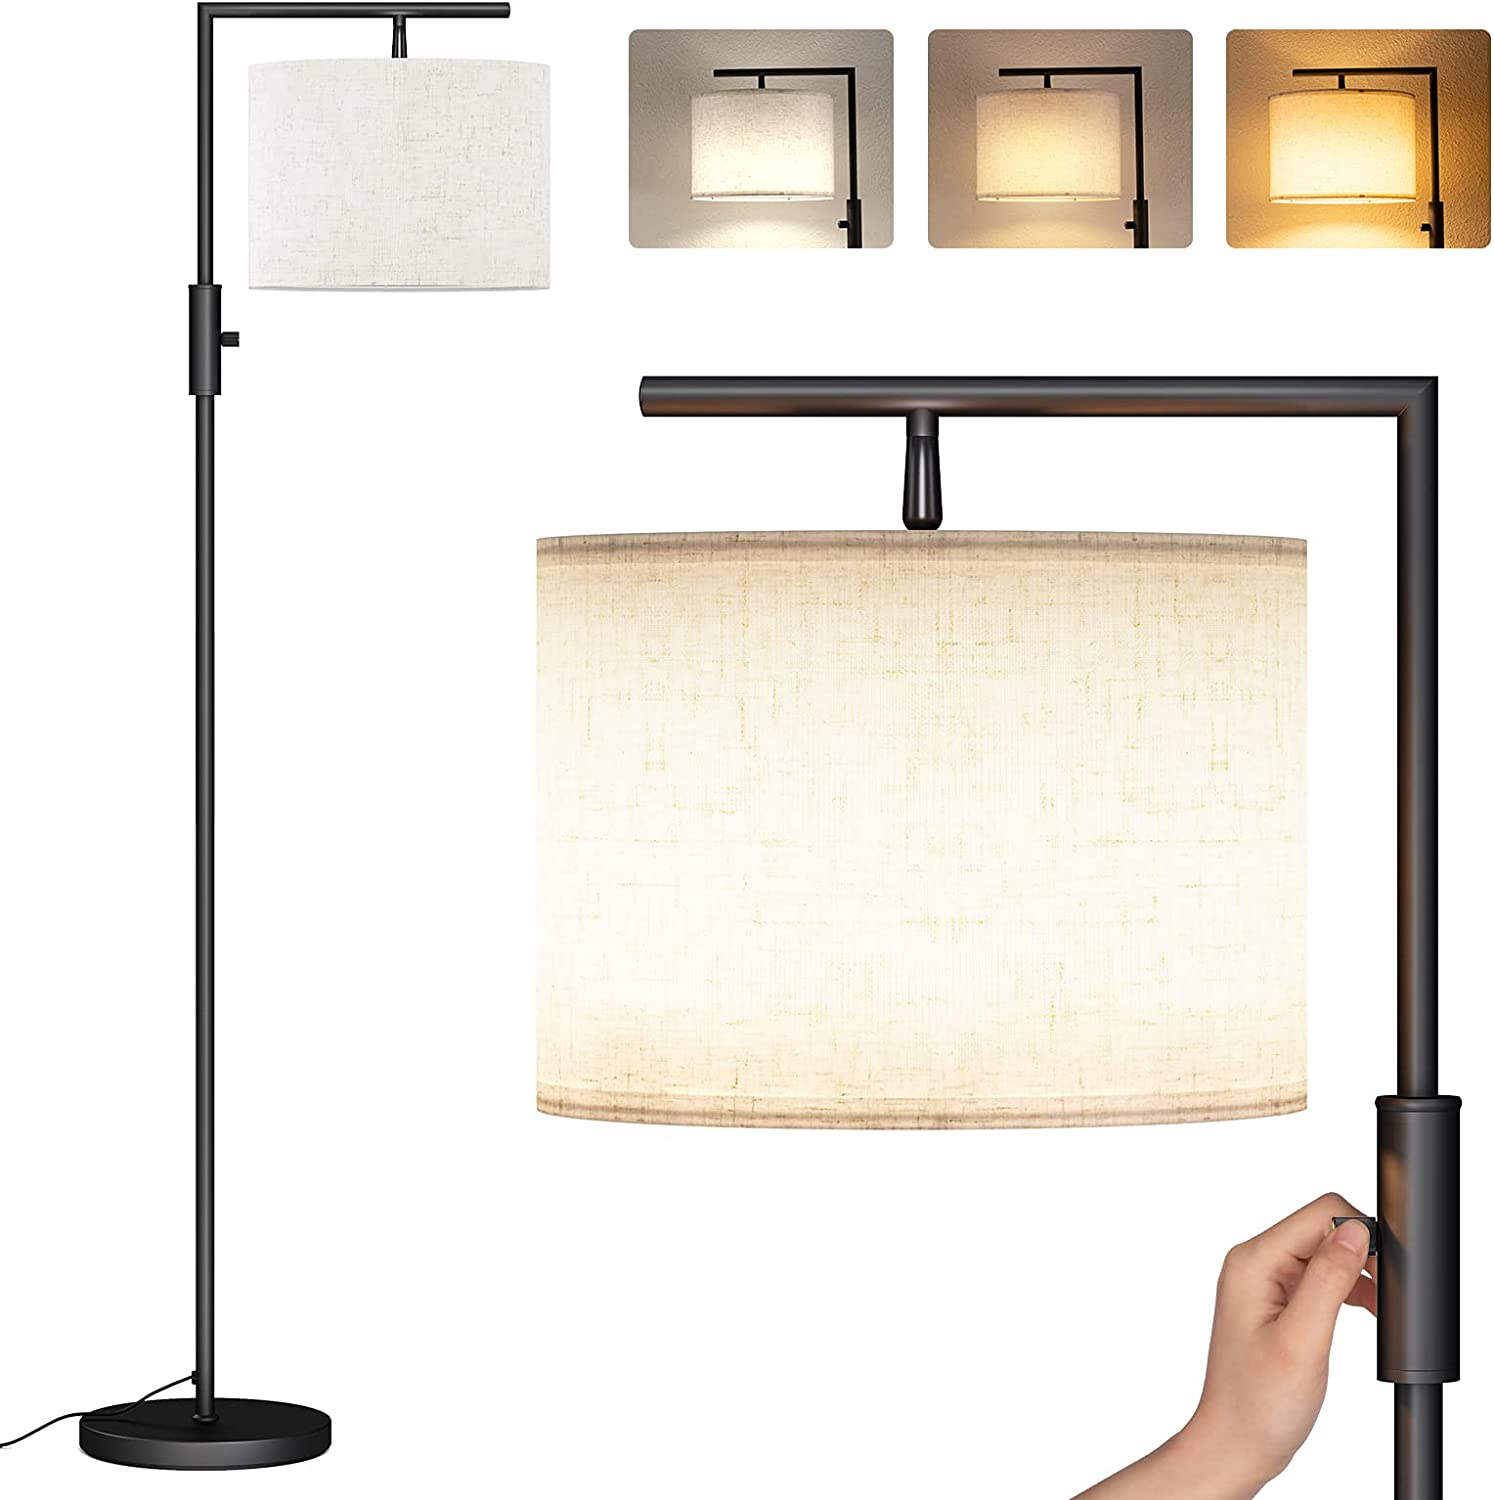 SUNMORY Modern Floor Lamps for Living Room, Standing Lamp with Rotary Switch, Tall Pole Floor Reading Lamp with Hanging Shade for Study Room, Office, 3Color Temperatures 9W Bulb Include(Black)